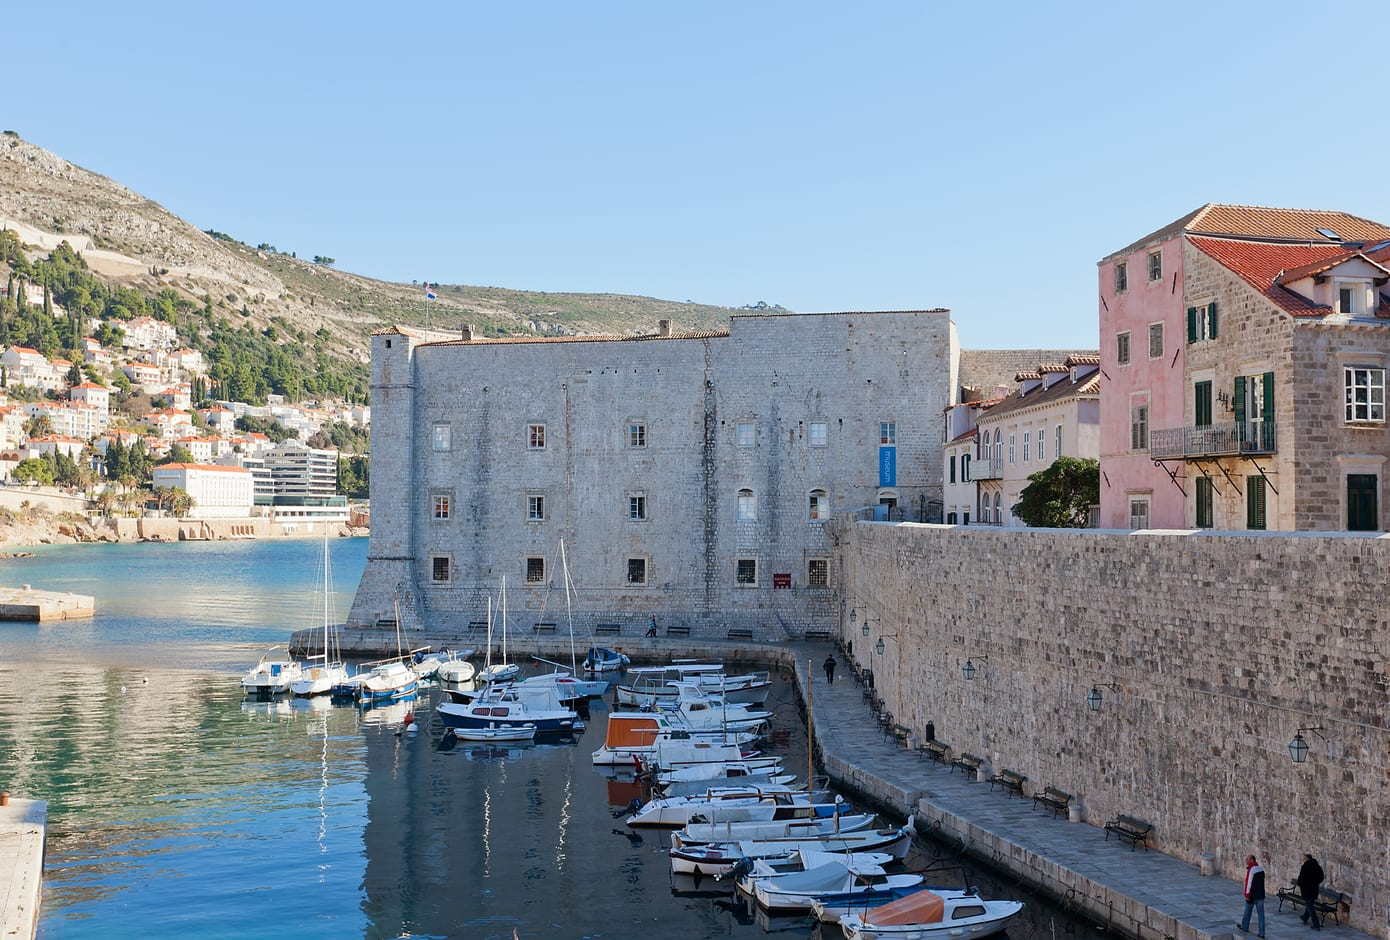 Outer view of the Ethnographic Museum Rupe, in Dubrovnik, Croatia.